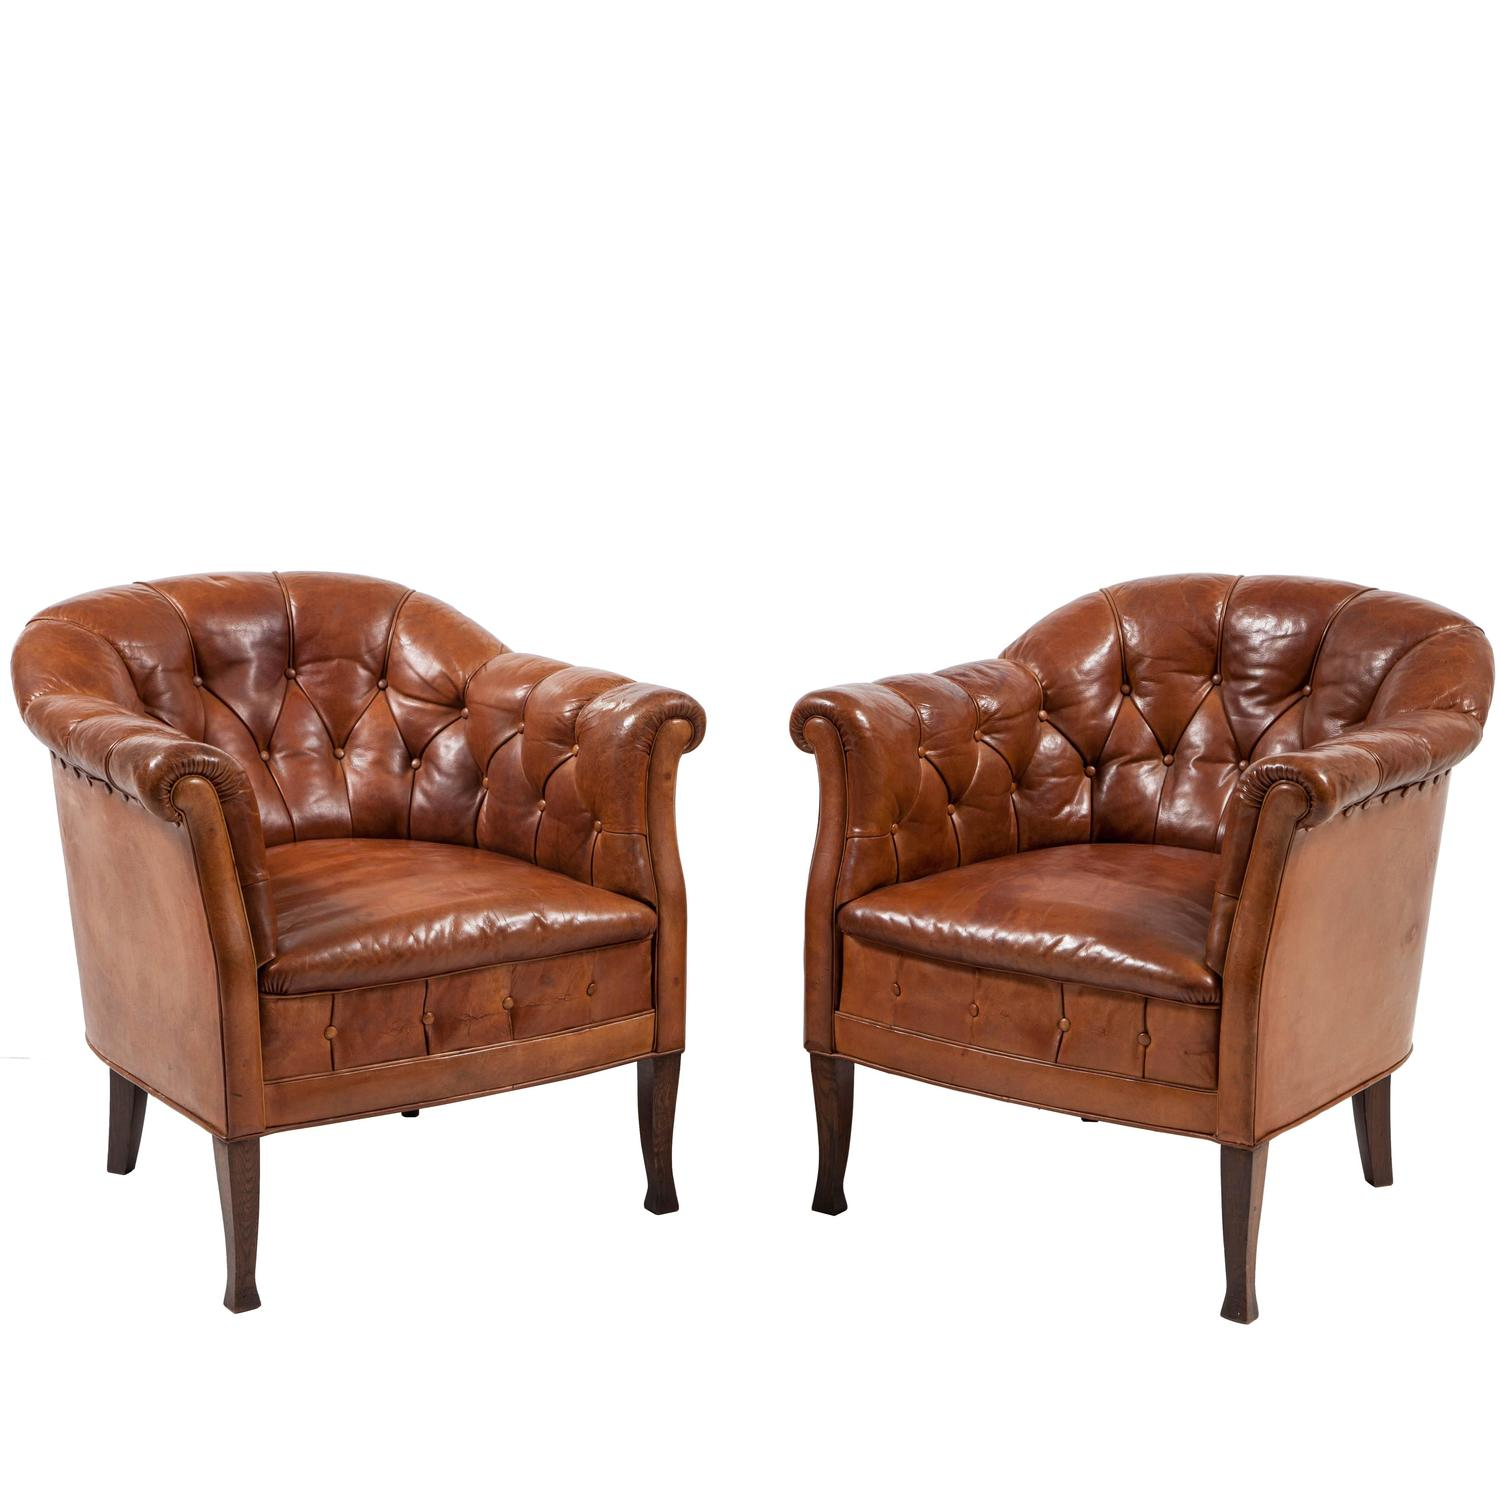 Small Leather Club Chair Pair Of Swedish Leather Club Chairs At 1stdibs